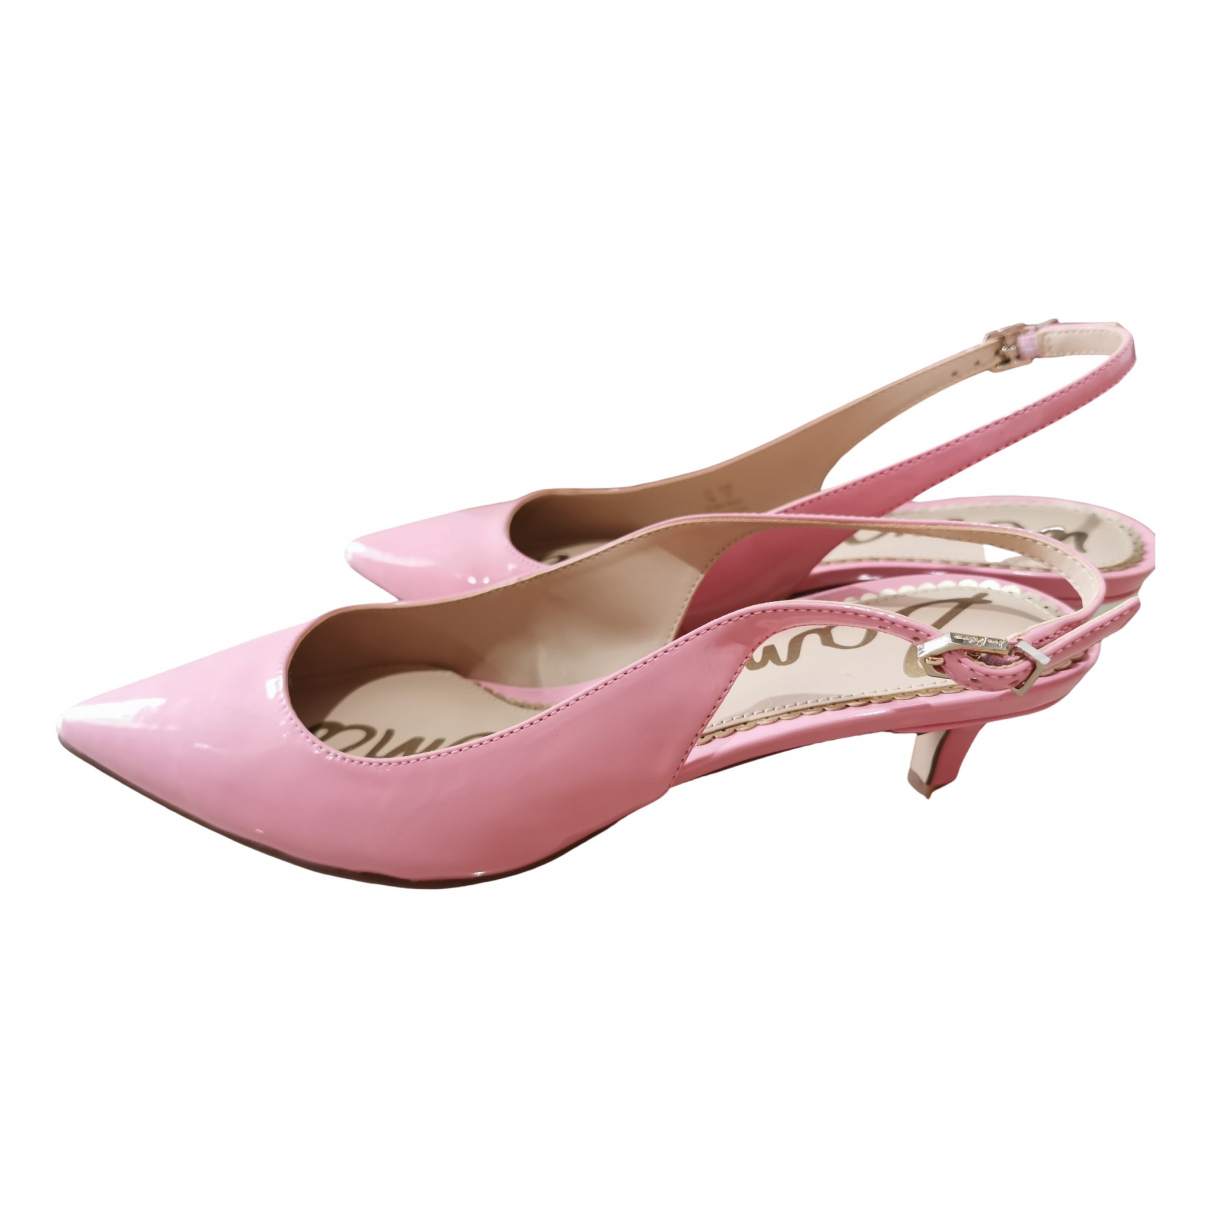 Sam Edelman \N Pink Patent leather Heels for Women 37 EU